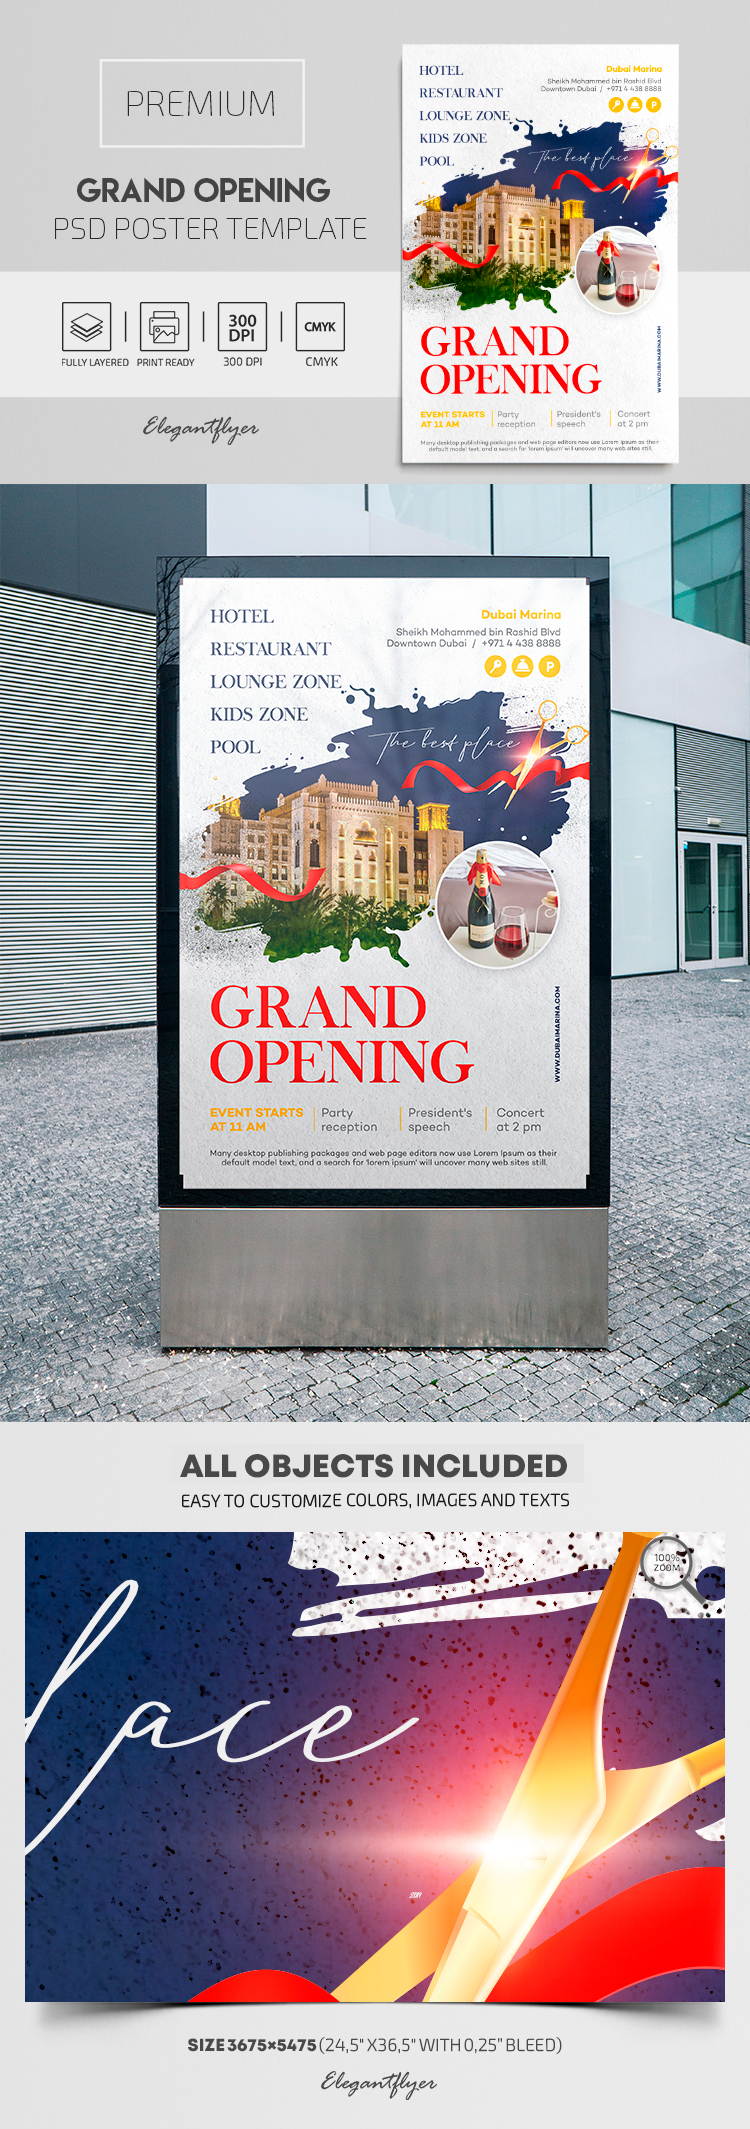 Grand Opening – Premium PSD Poster Template